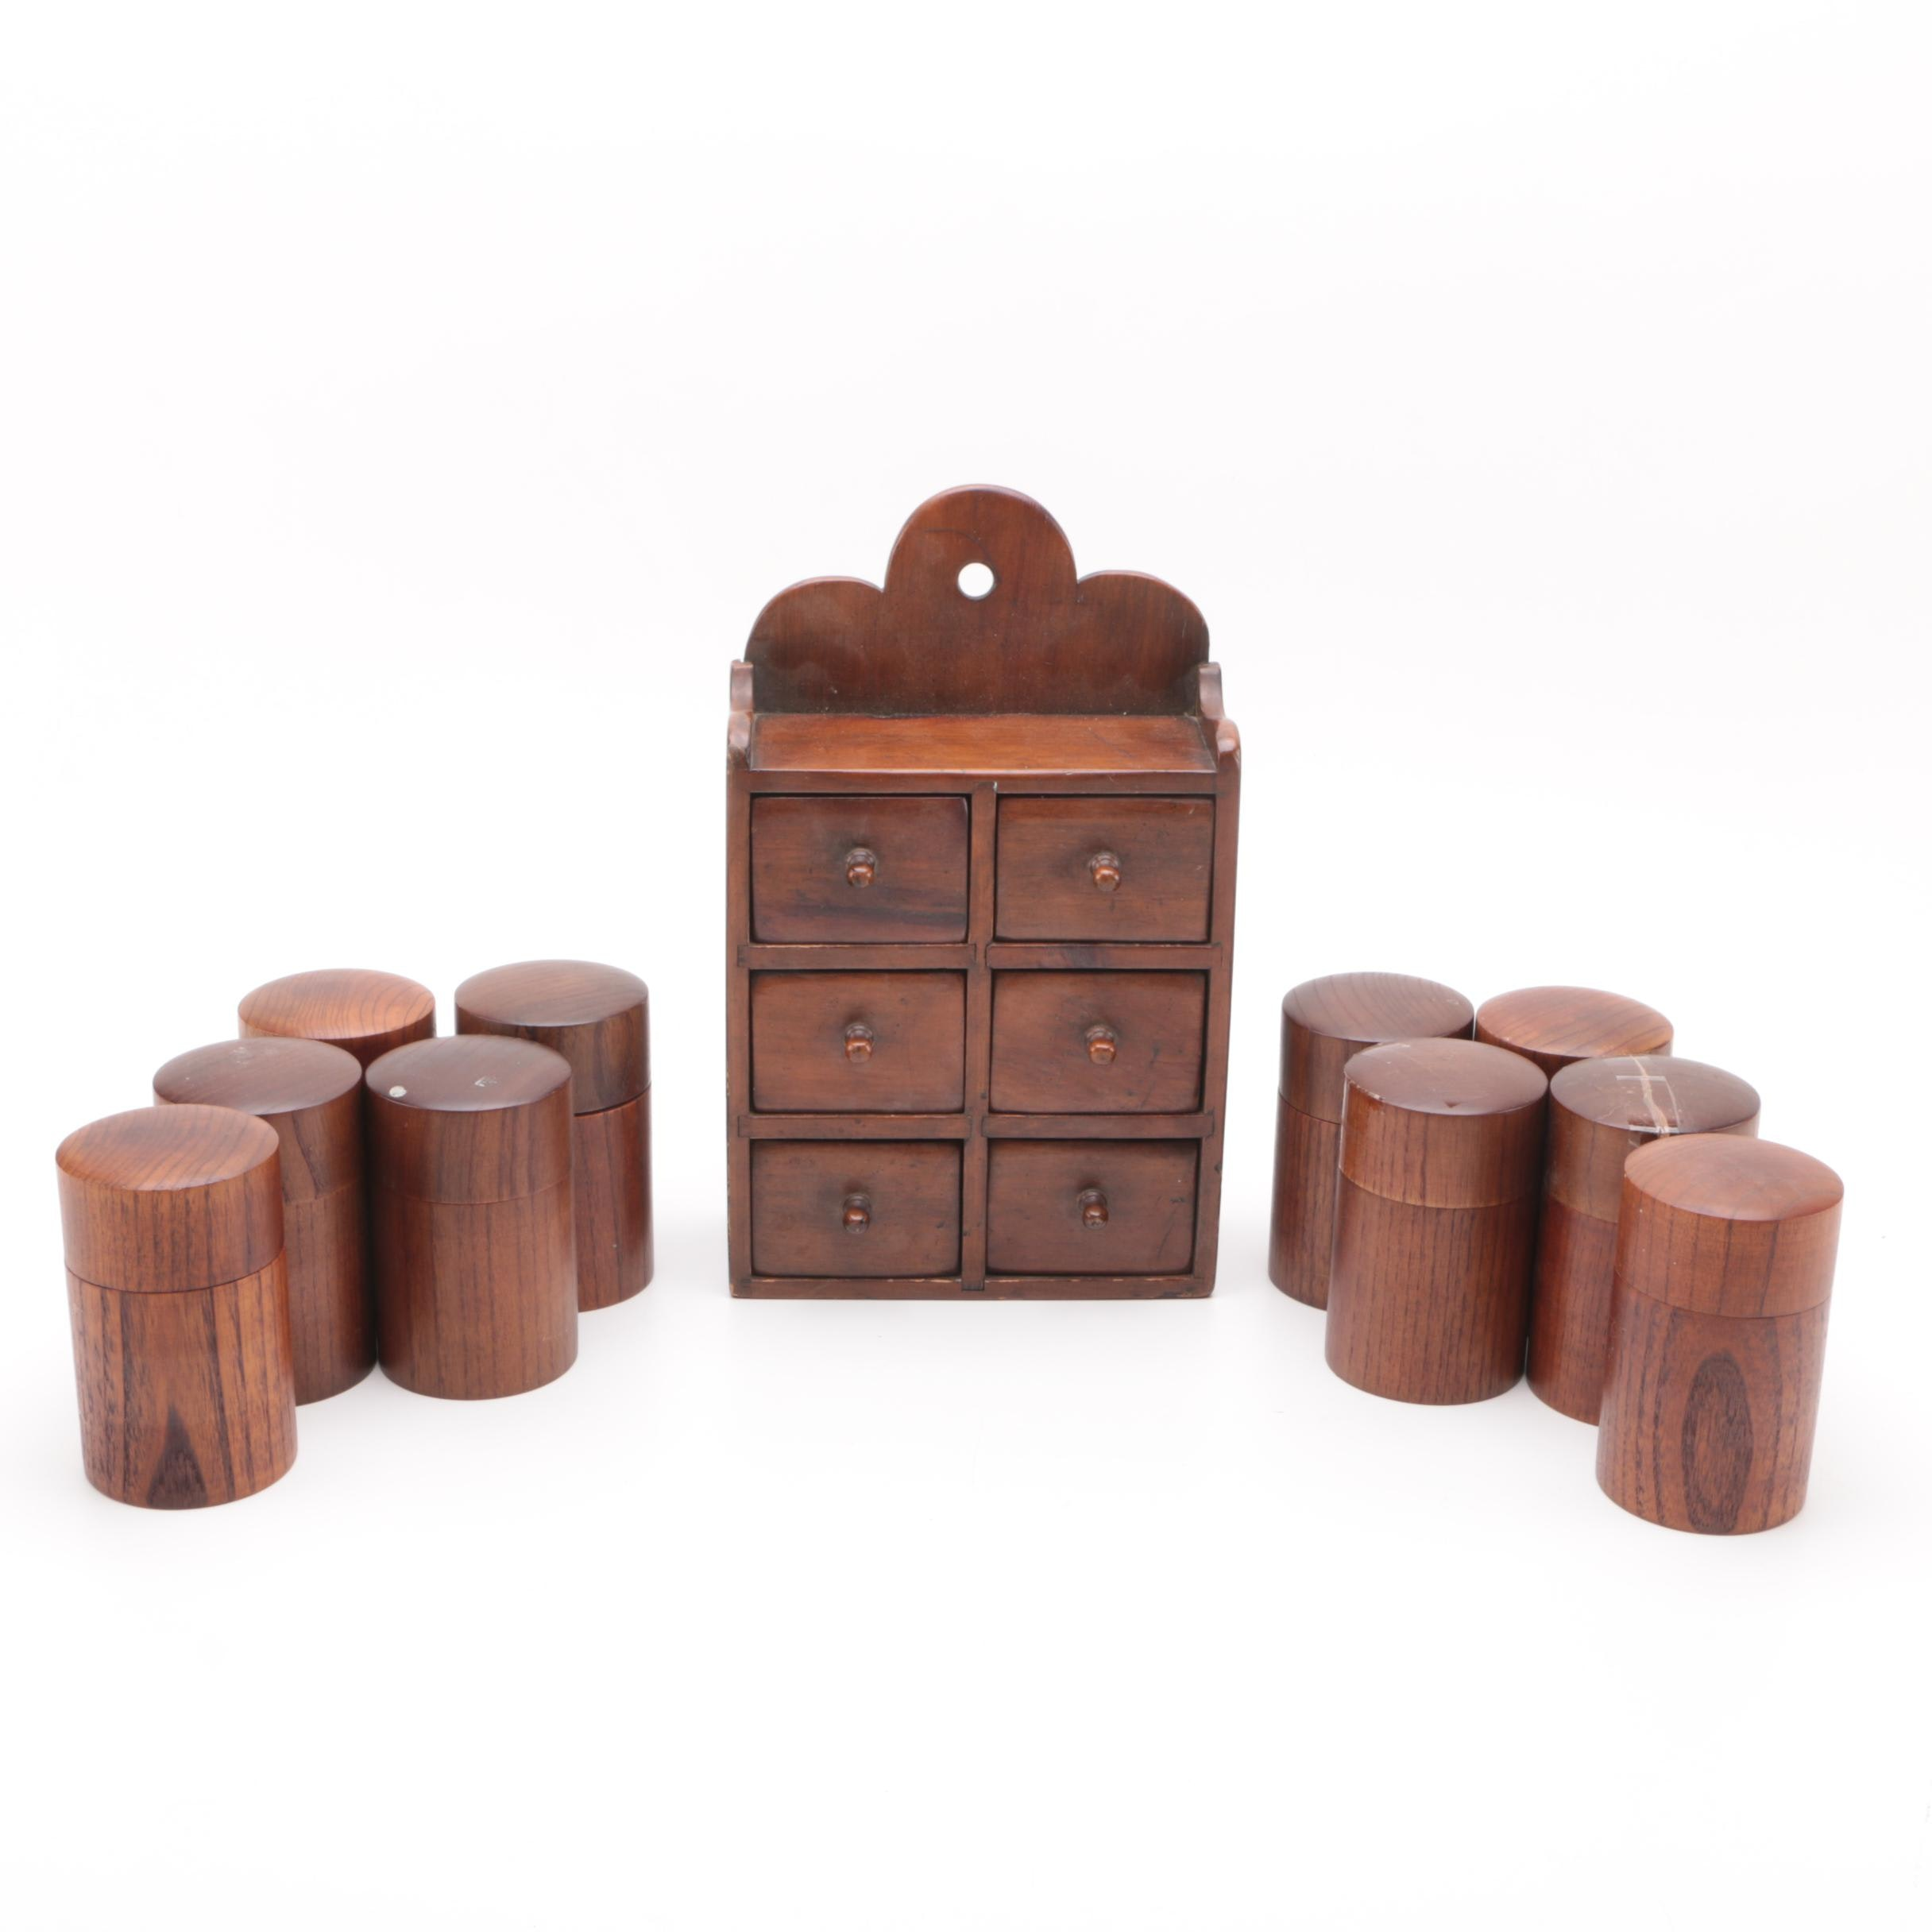 Wooden Spice Rack and Canisters